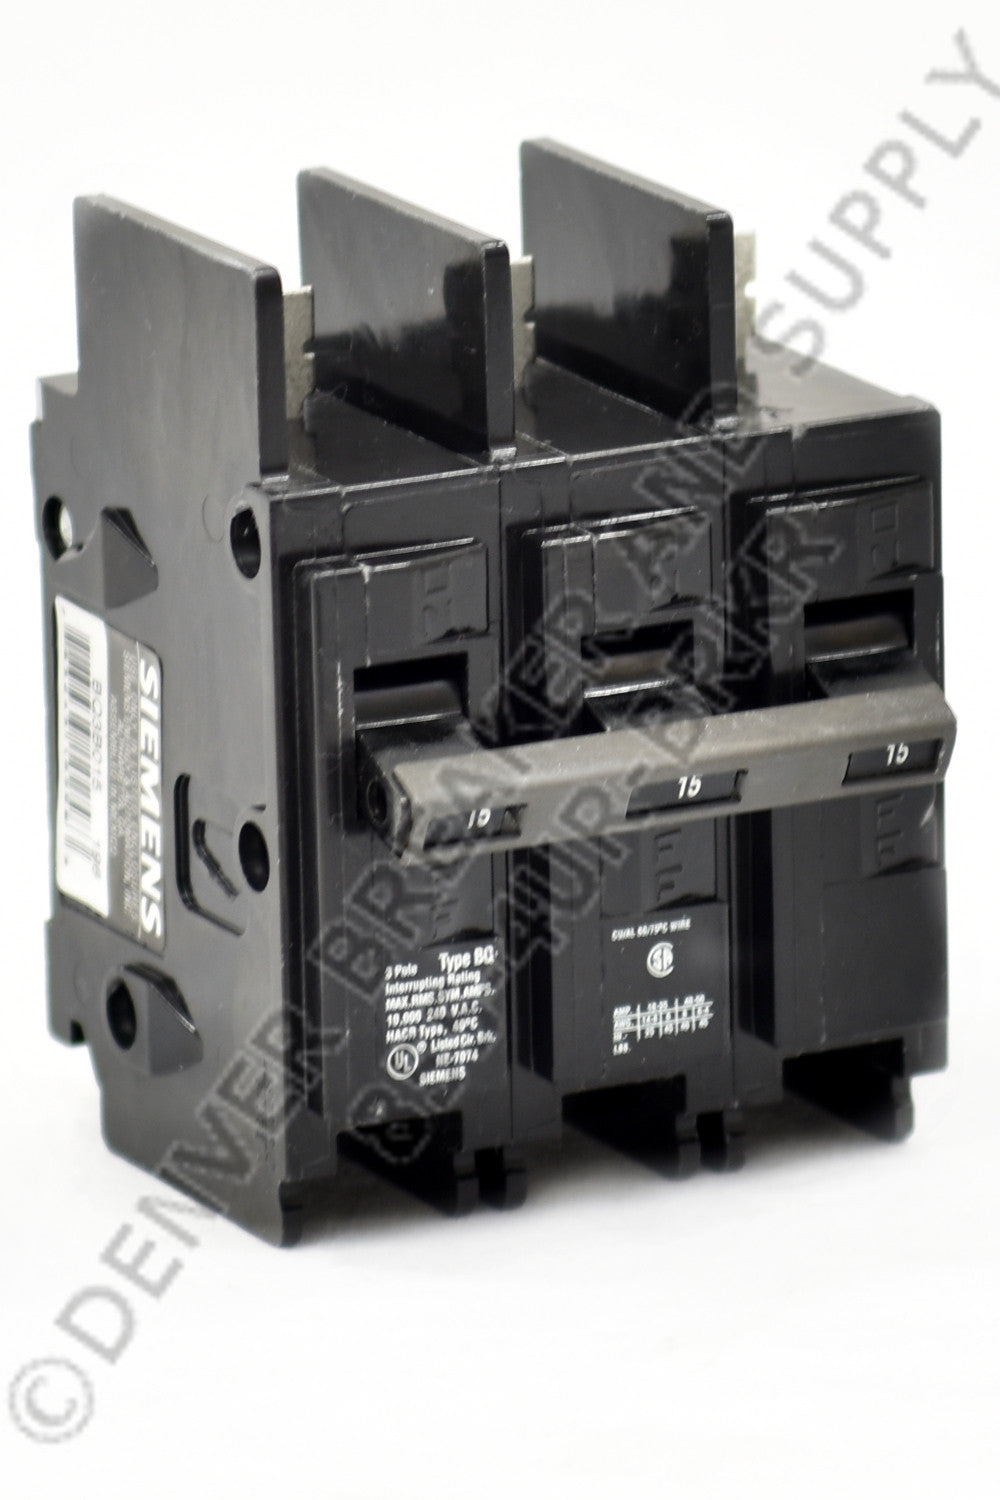 Siemens BQ3B015 Circuit Breakers